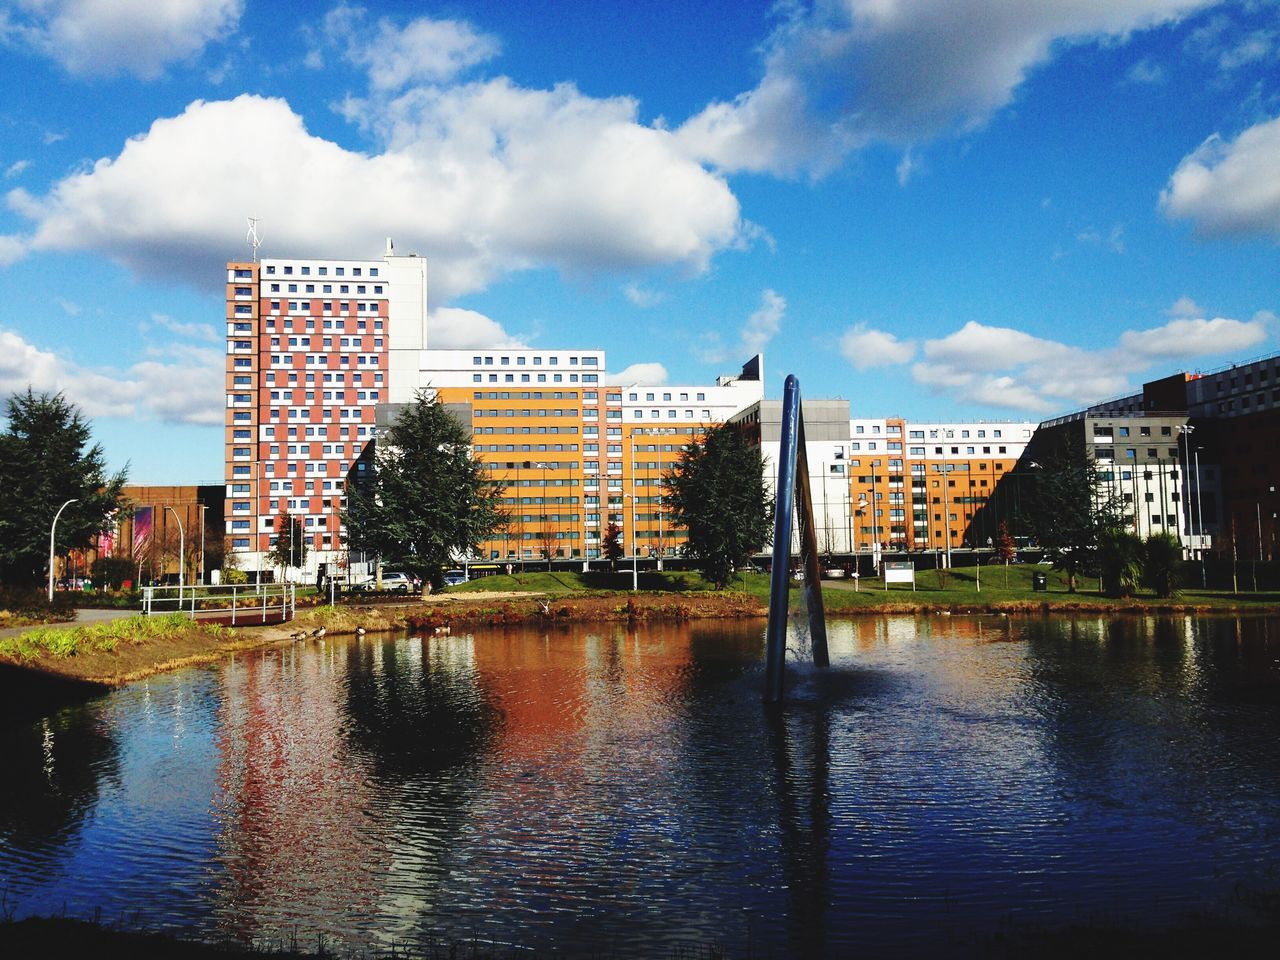 Aston University Aston University Campus Reflection Clouds Urban Landscape Pond Lake Sculpture Scene Scenery Shots On Location Beautiful Day Urban Exploration